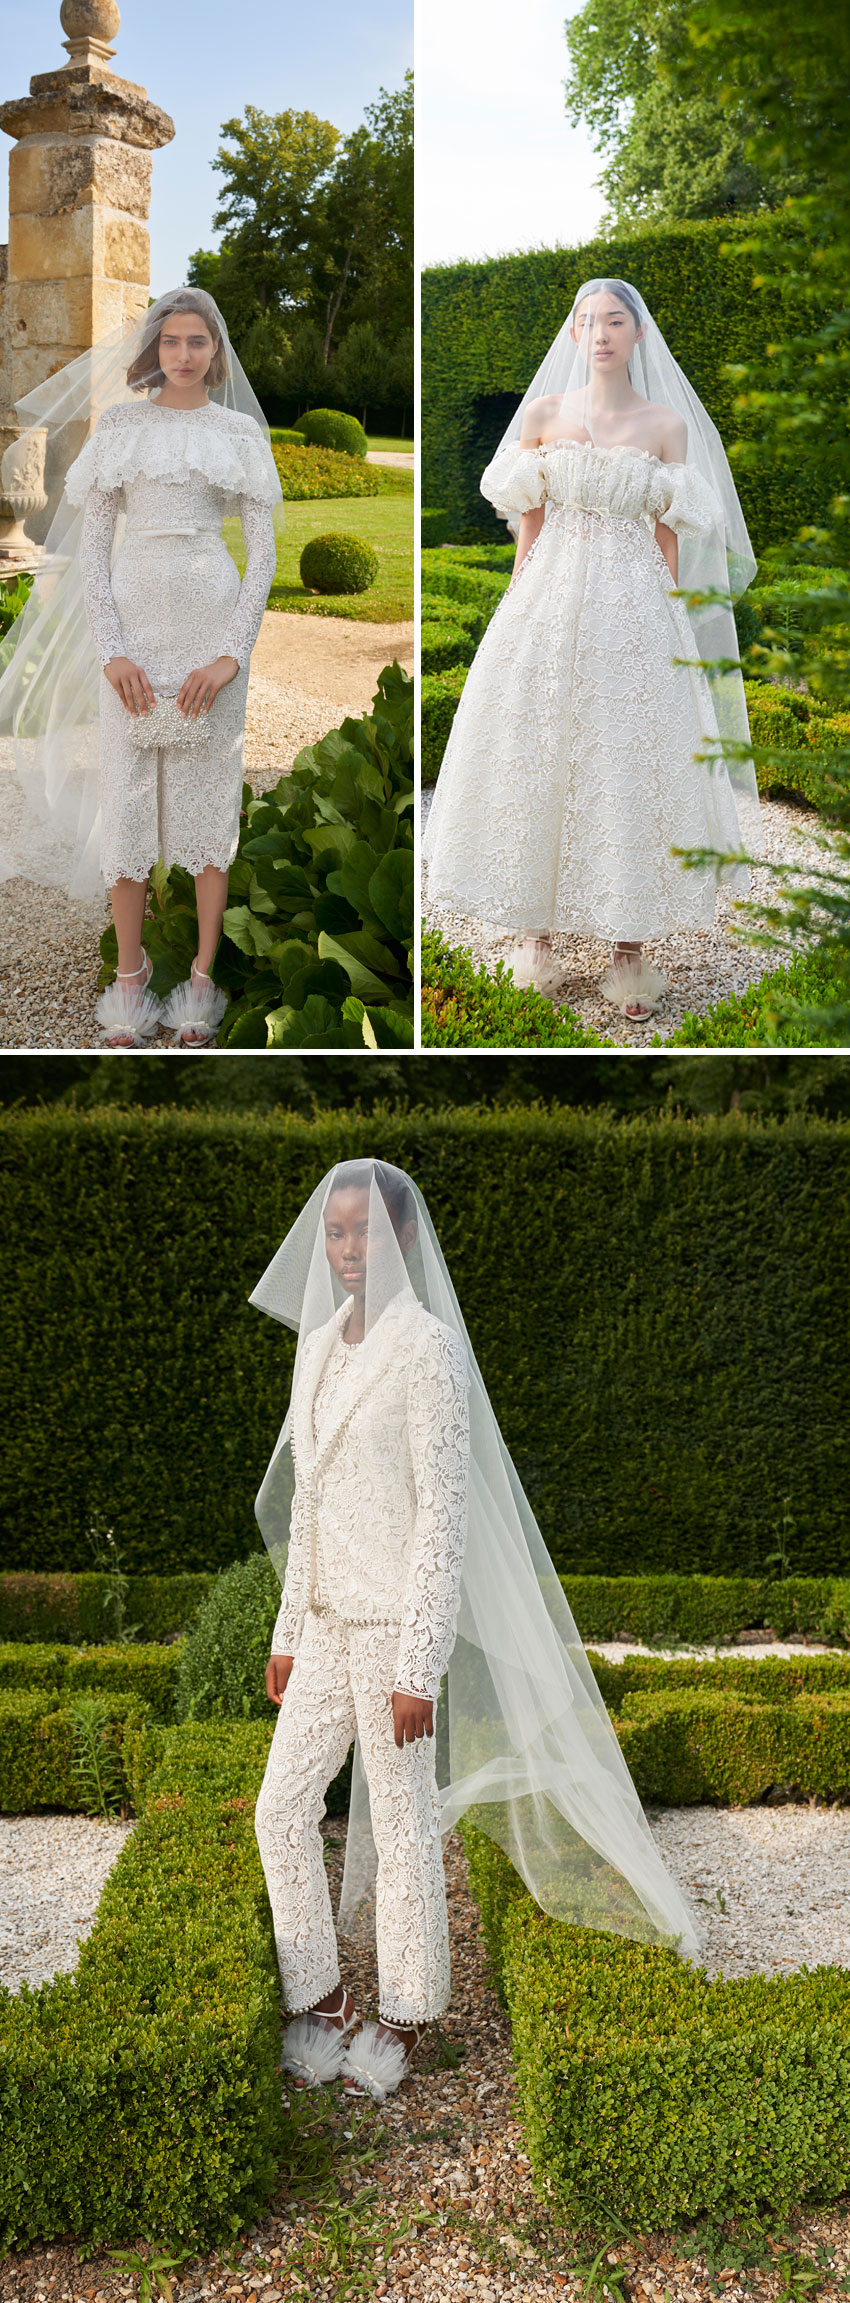 Giambattista Valli first bridal collection available on September 9th 2021